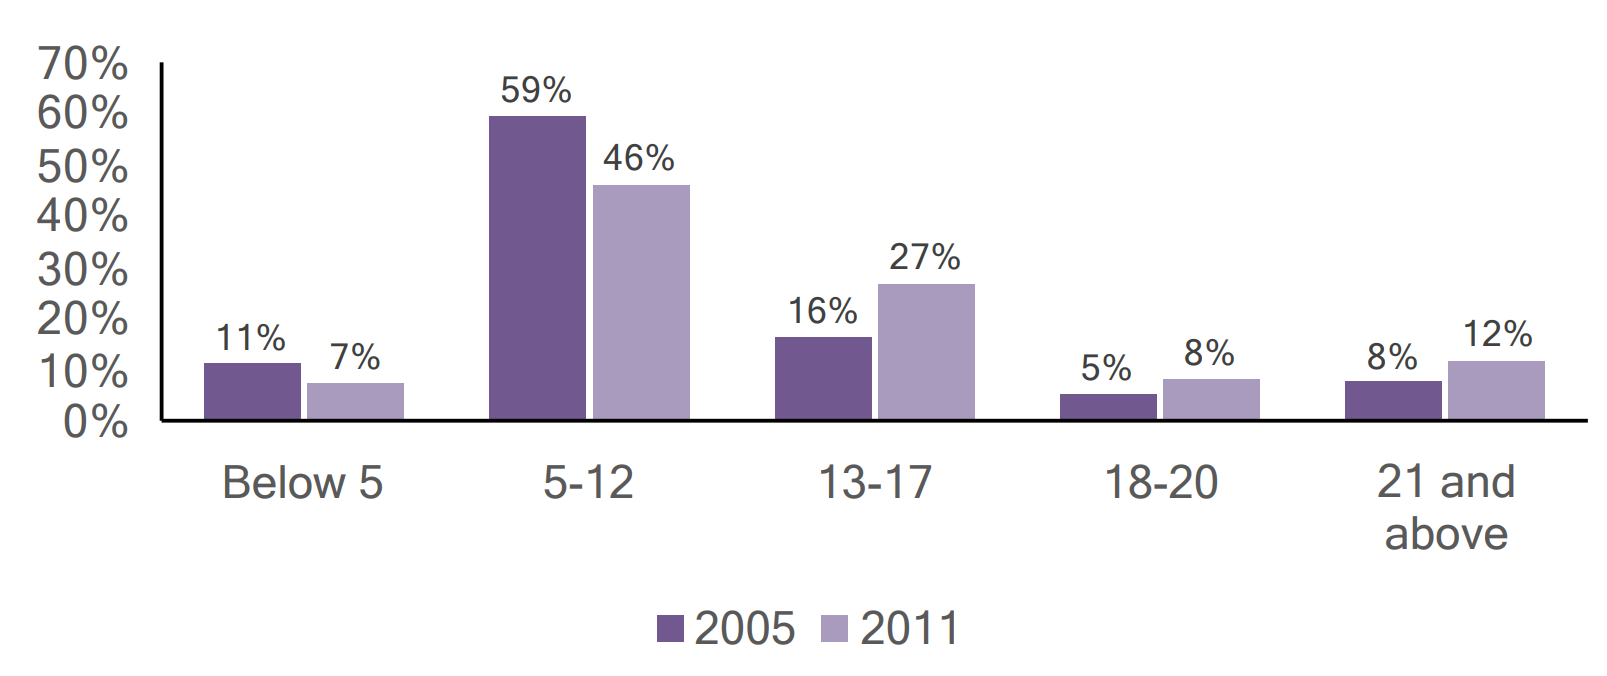 Bar graph of individuals with autism in Lawrence County by age, comparing 2005 and 2011 data.